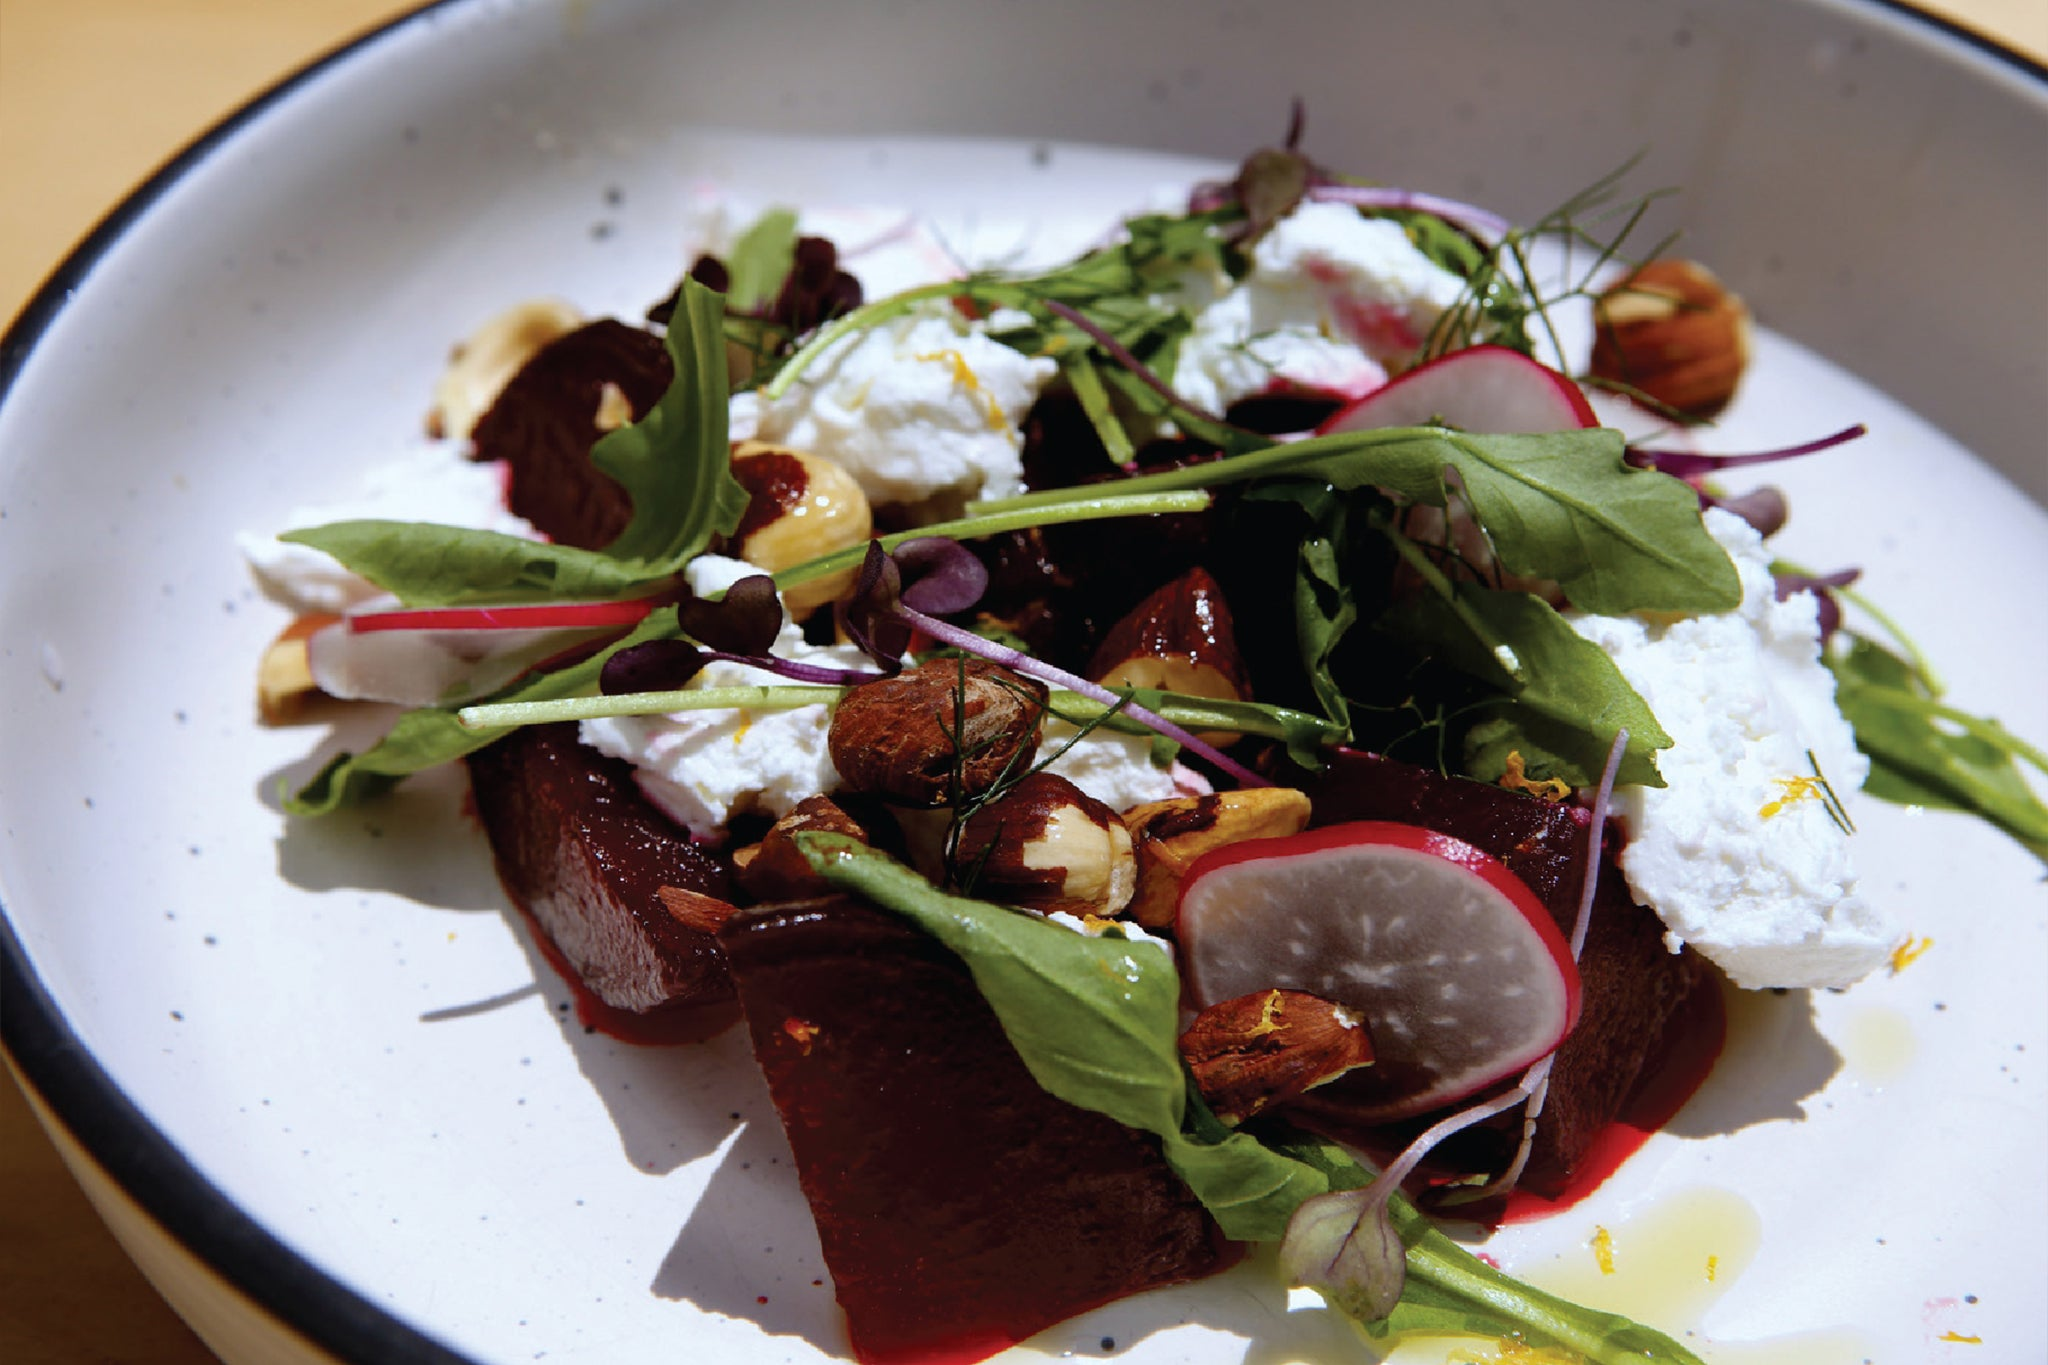 Beech Honey Dew Beetroot Salad